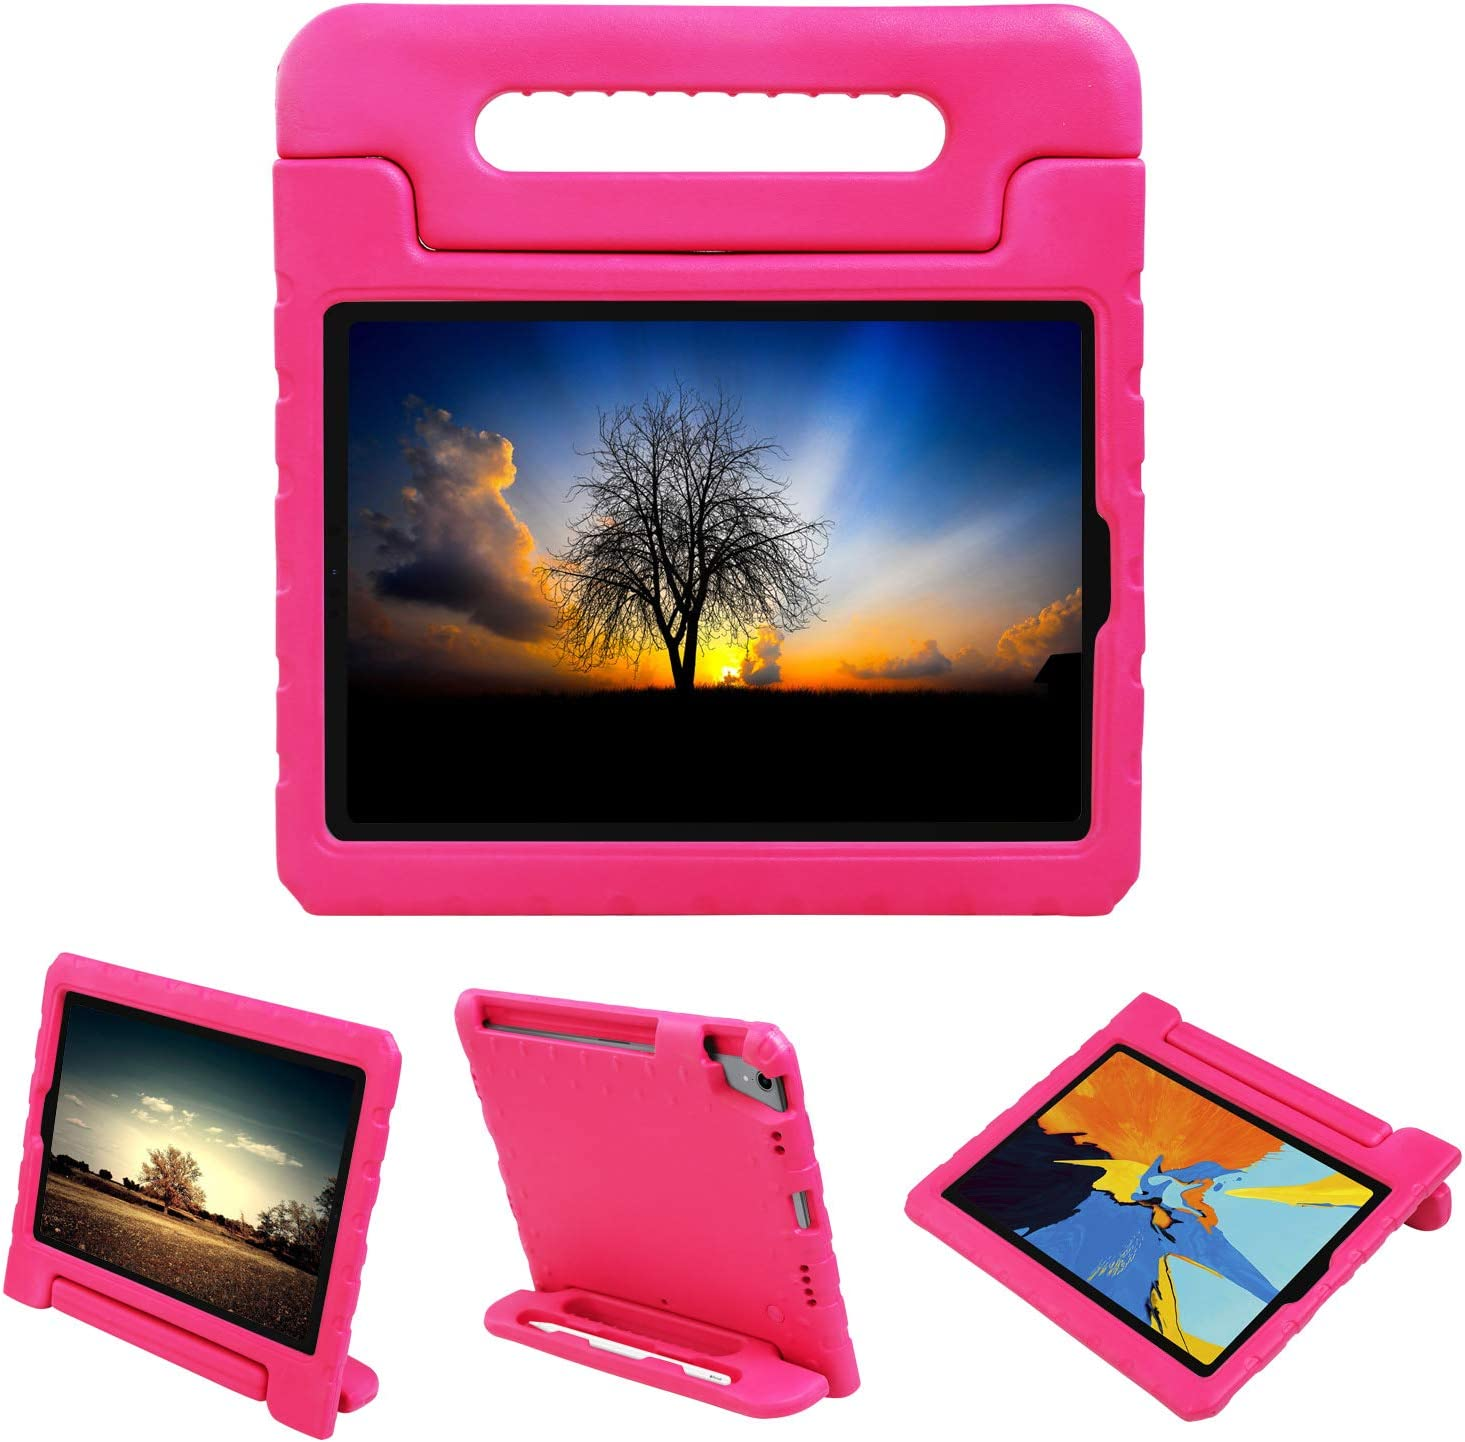 NEWSTYLE Shockproof Case for Apple iPad Pro 11 inch Case Light Weight Kids Case Super Protection Cover Handle Stand Case for Kids Children with Apple Pencil Holder (2018 Released) (Rose)